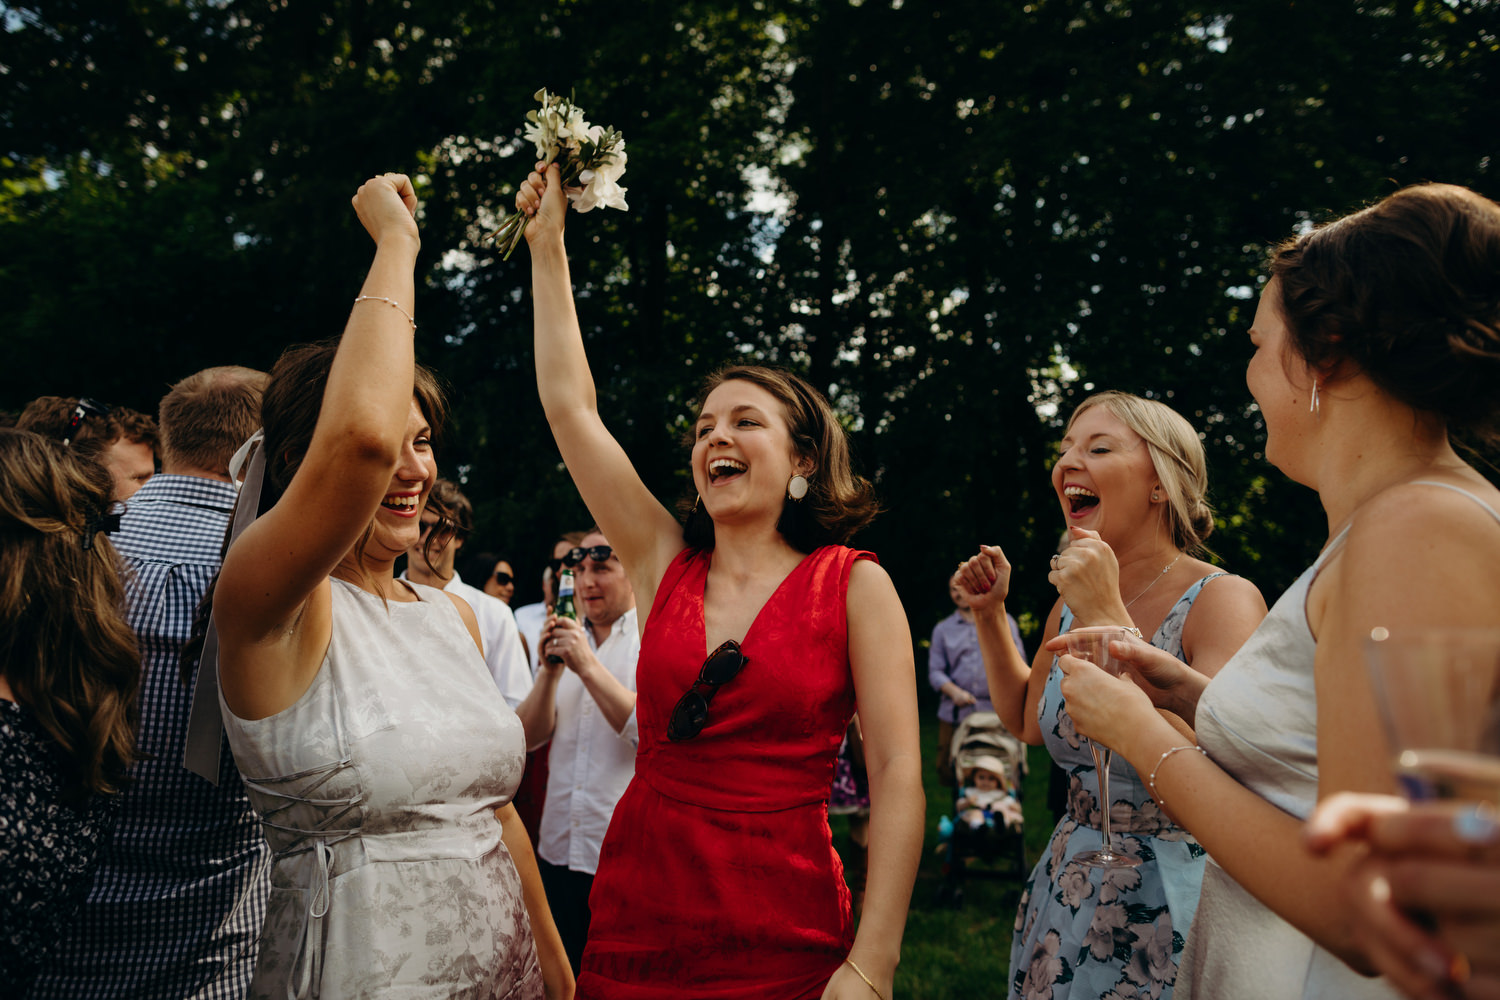 lady in red catches bouquet